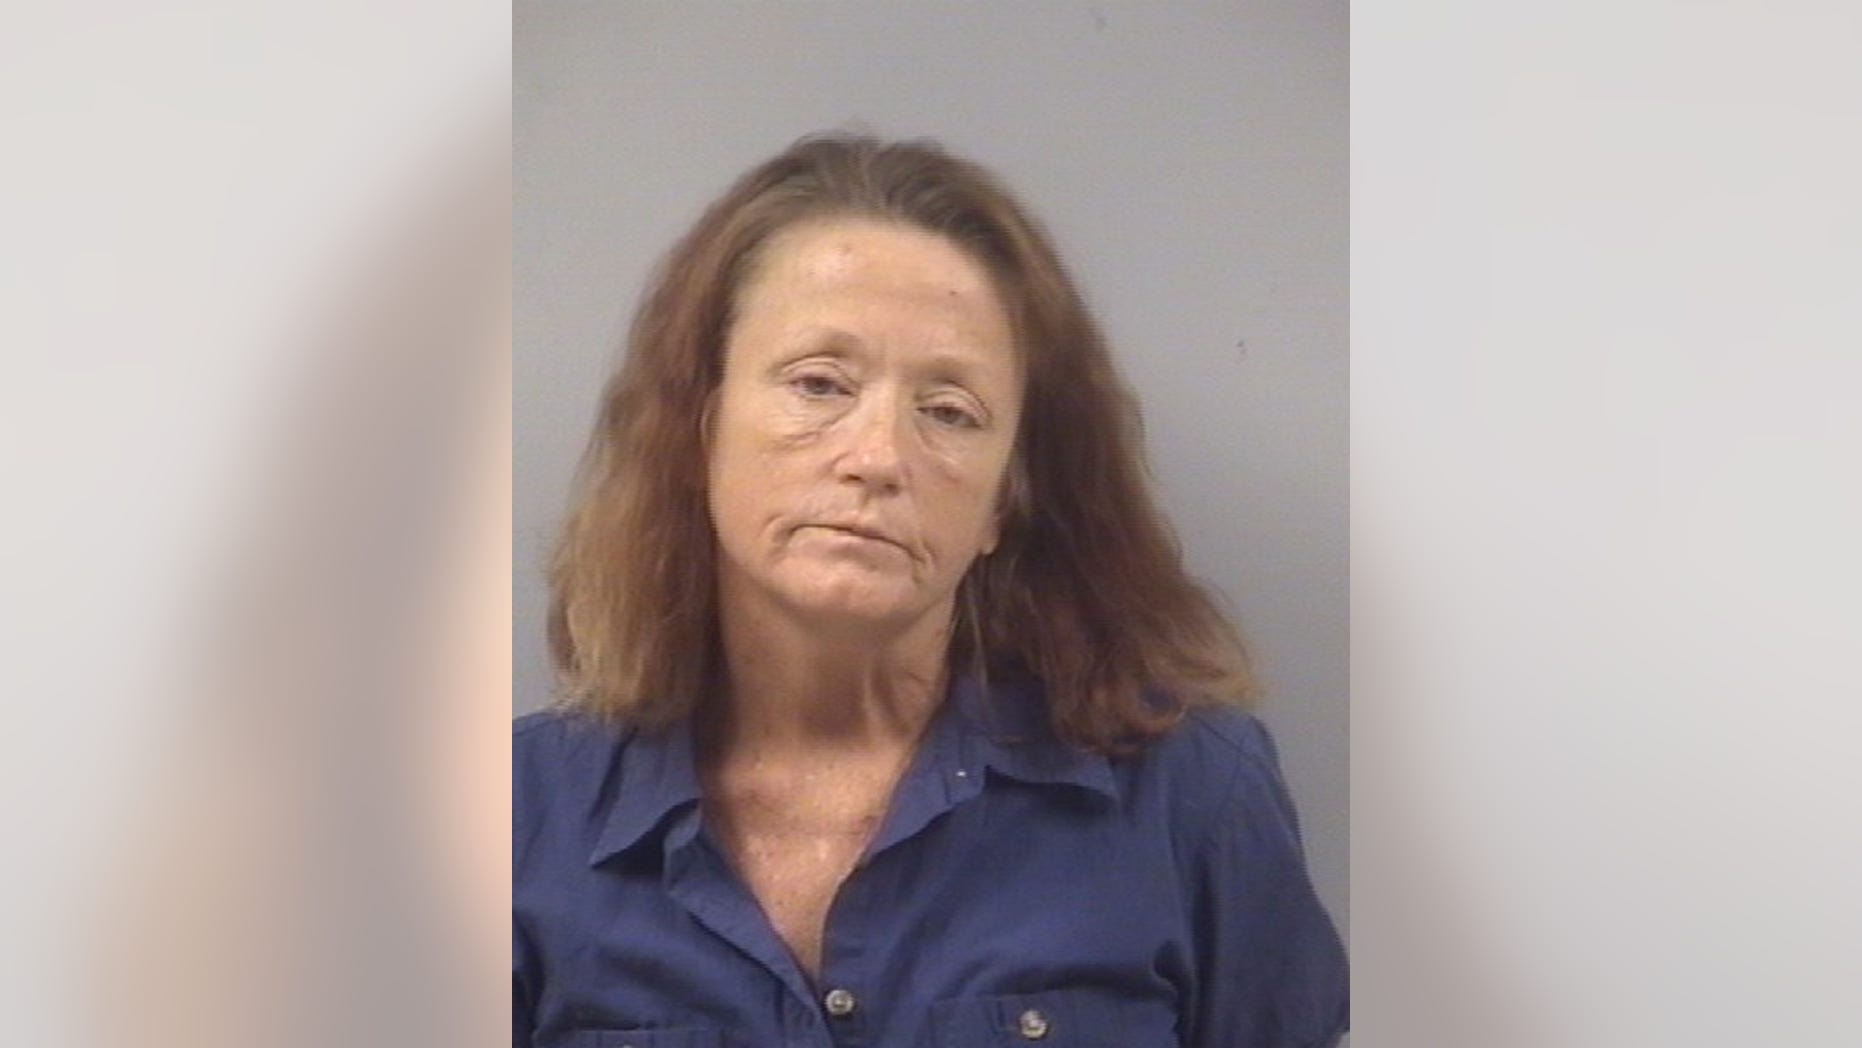 Gloria Mitchell was allegedly intoxicated at the time of the incident.